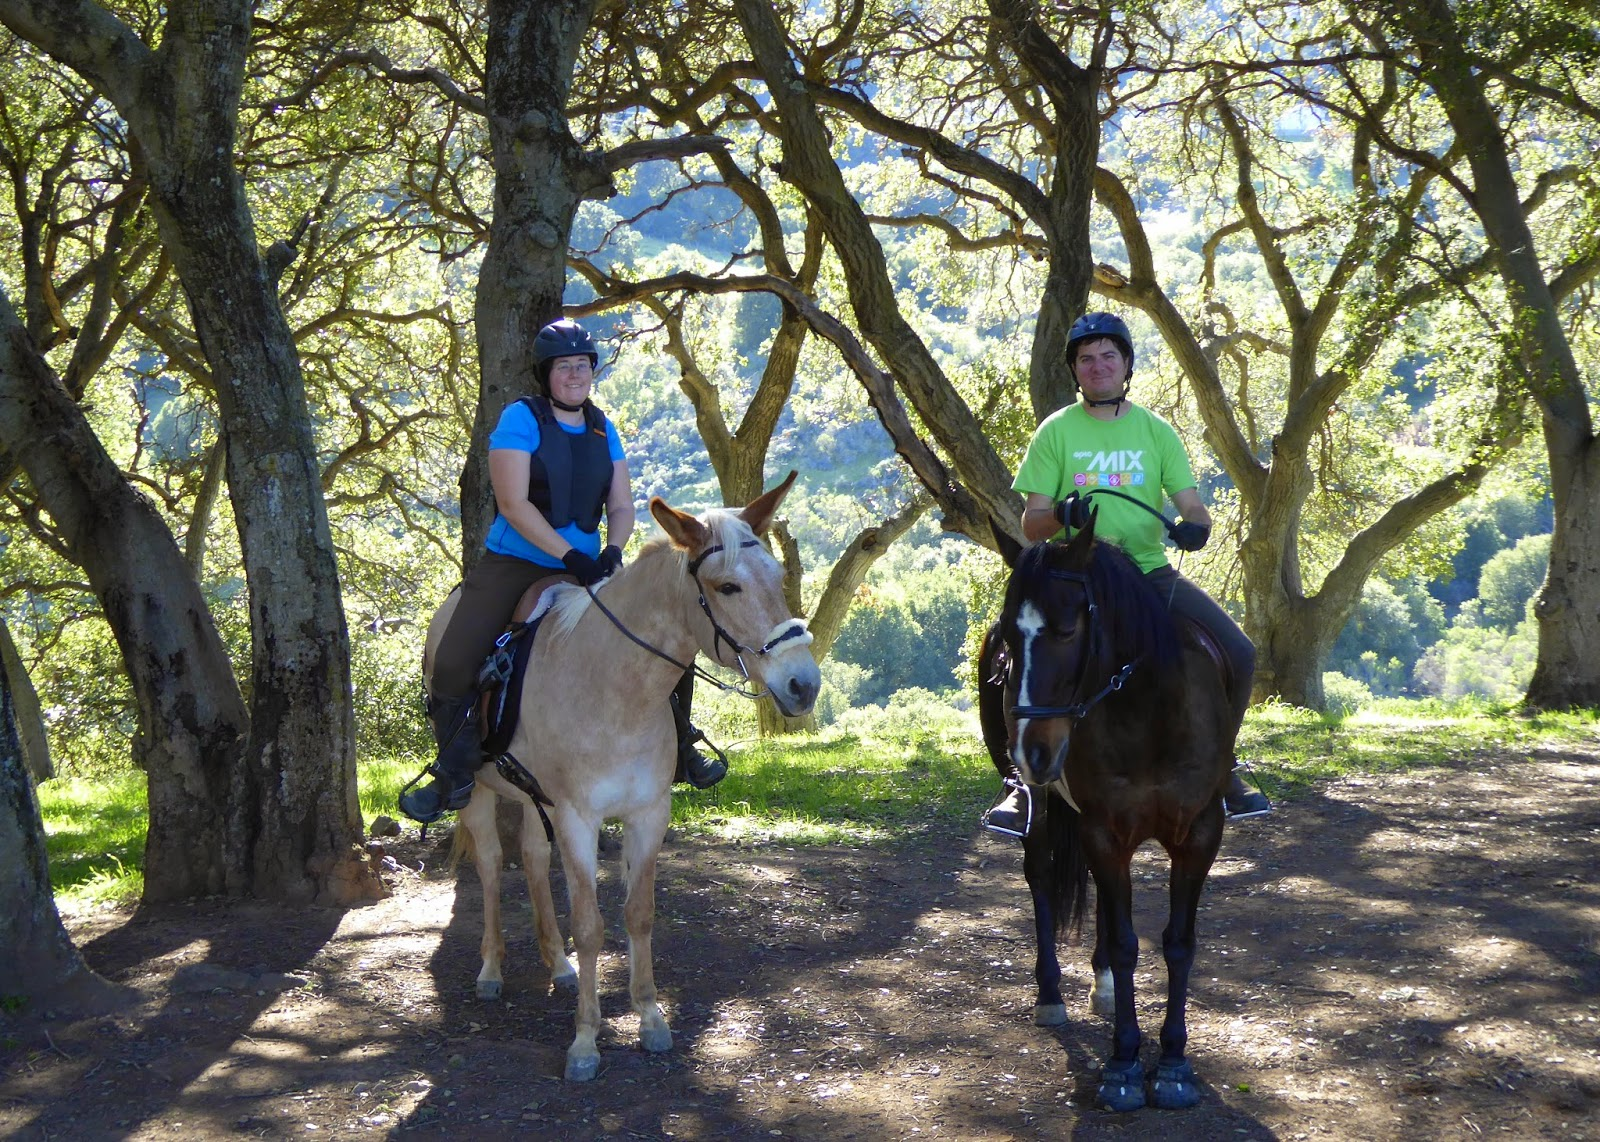 Winery Ride and Treeless Saddle Trial – DIY Horse Ownership